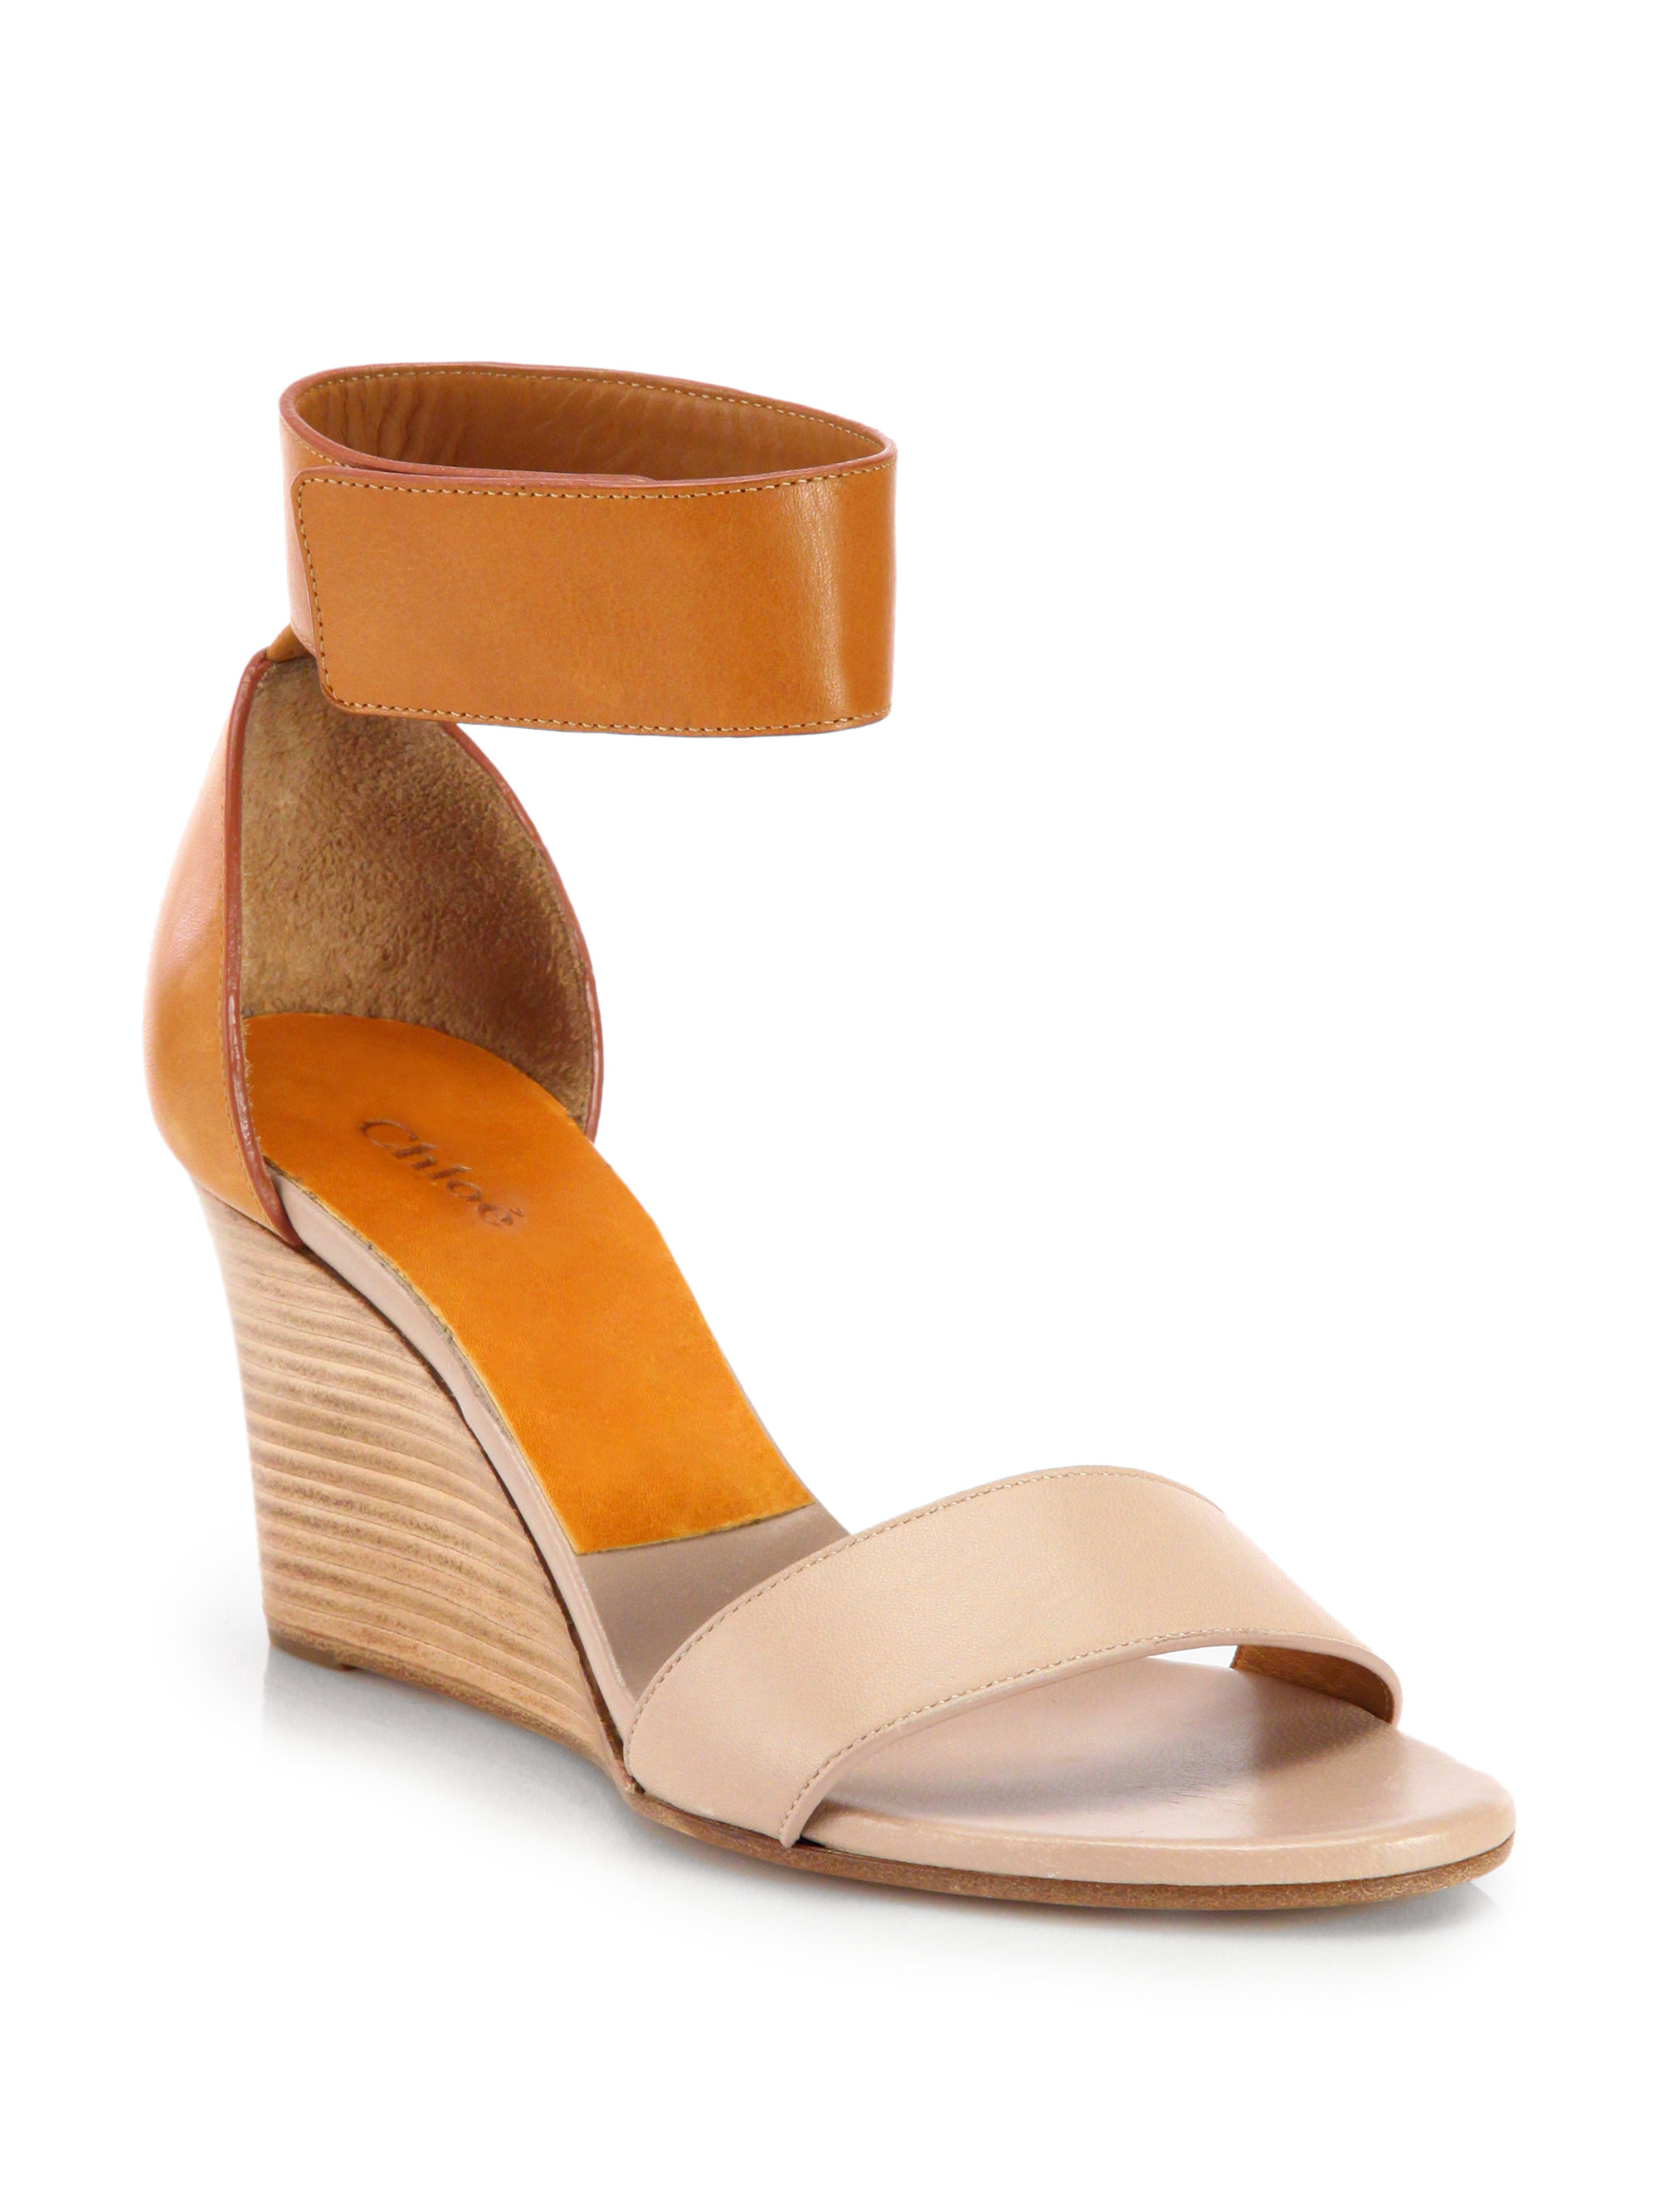 010e6cc861a87c Lyst - Chloé Gala Leather Ankle Strap Wedge Sandals in Orange